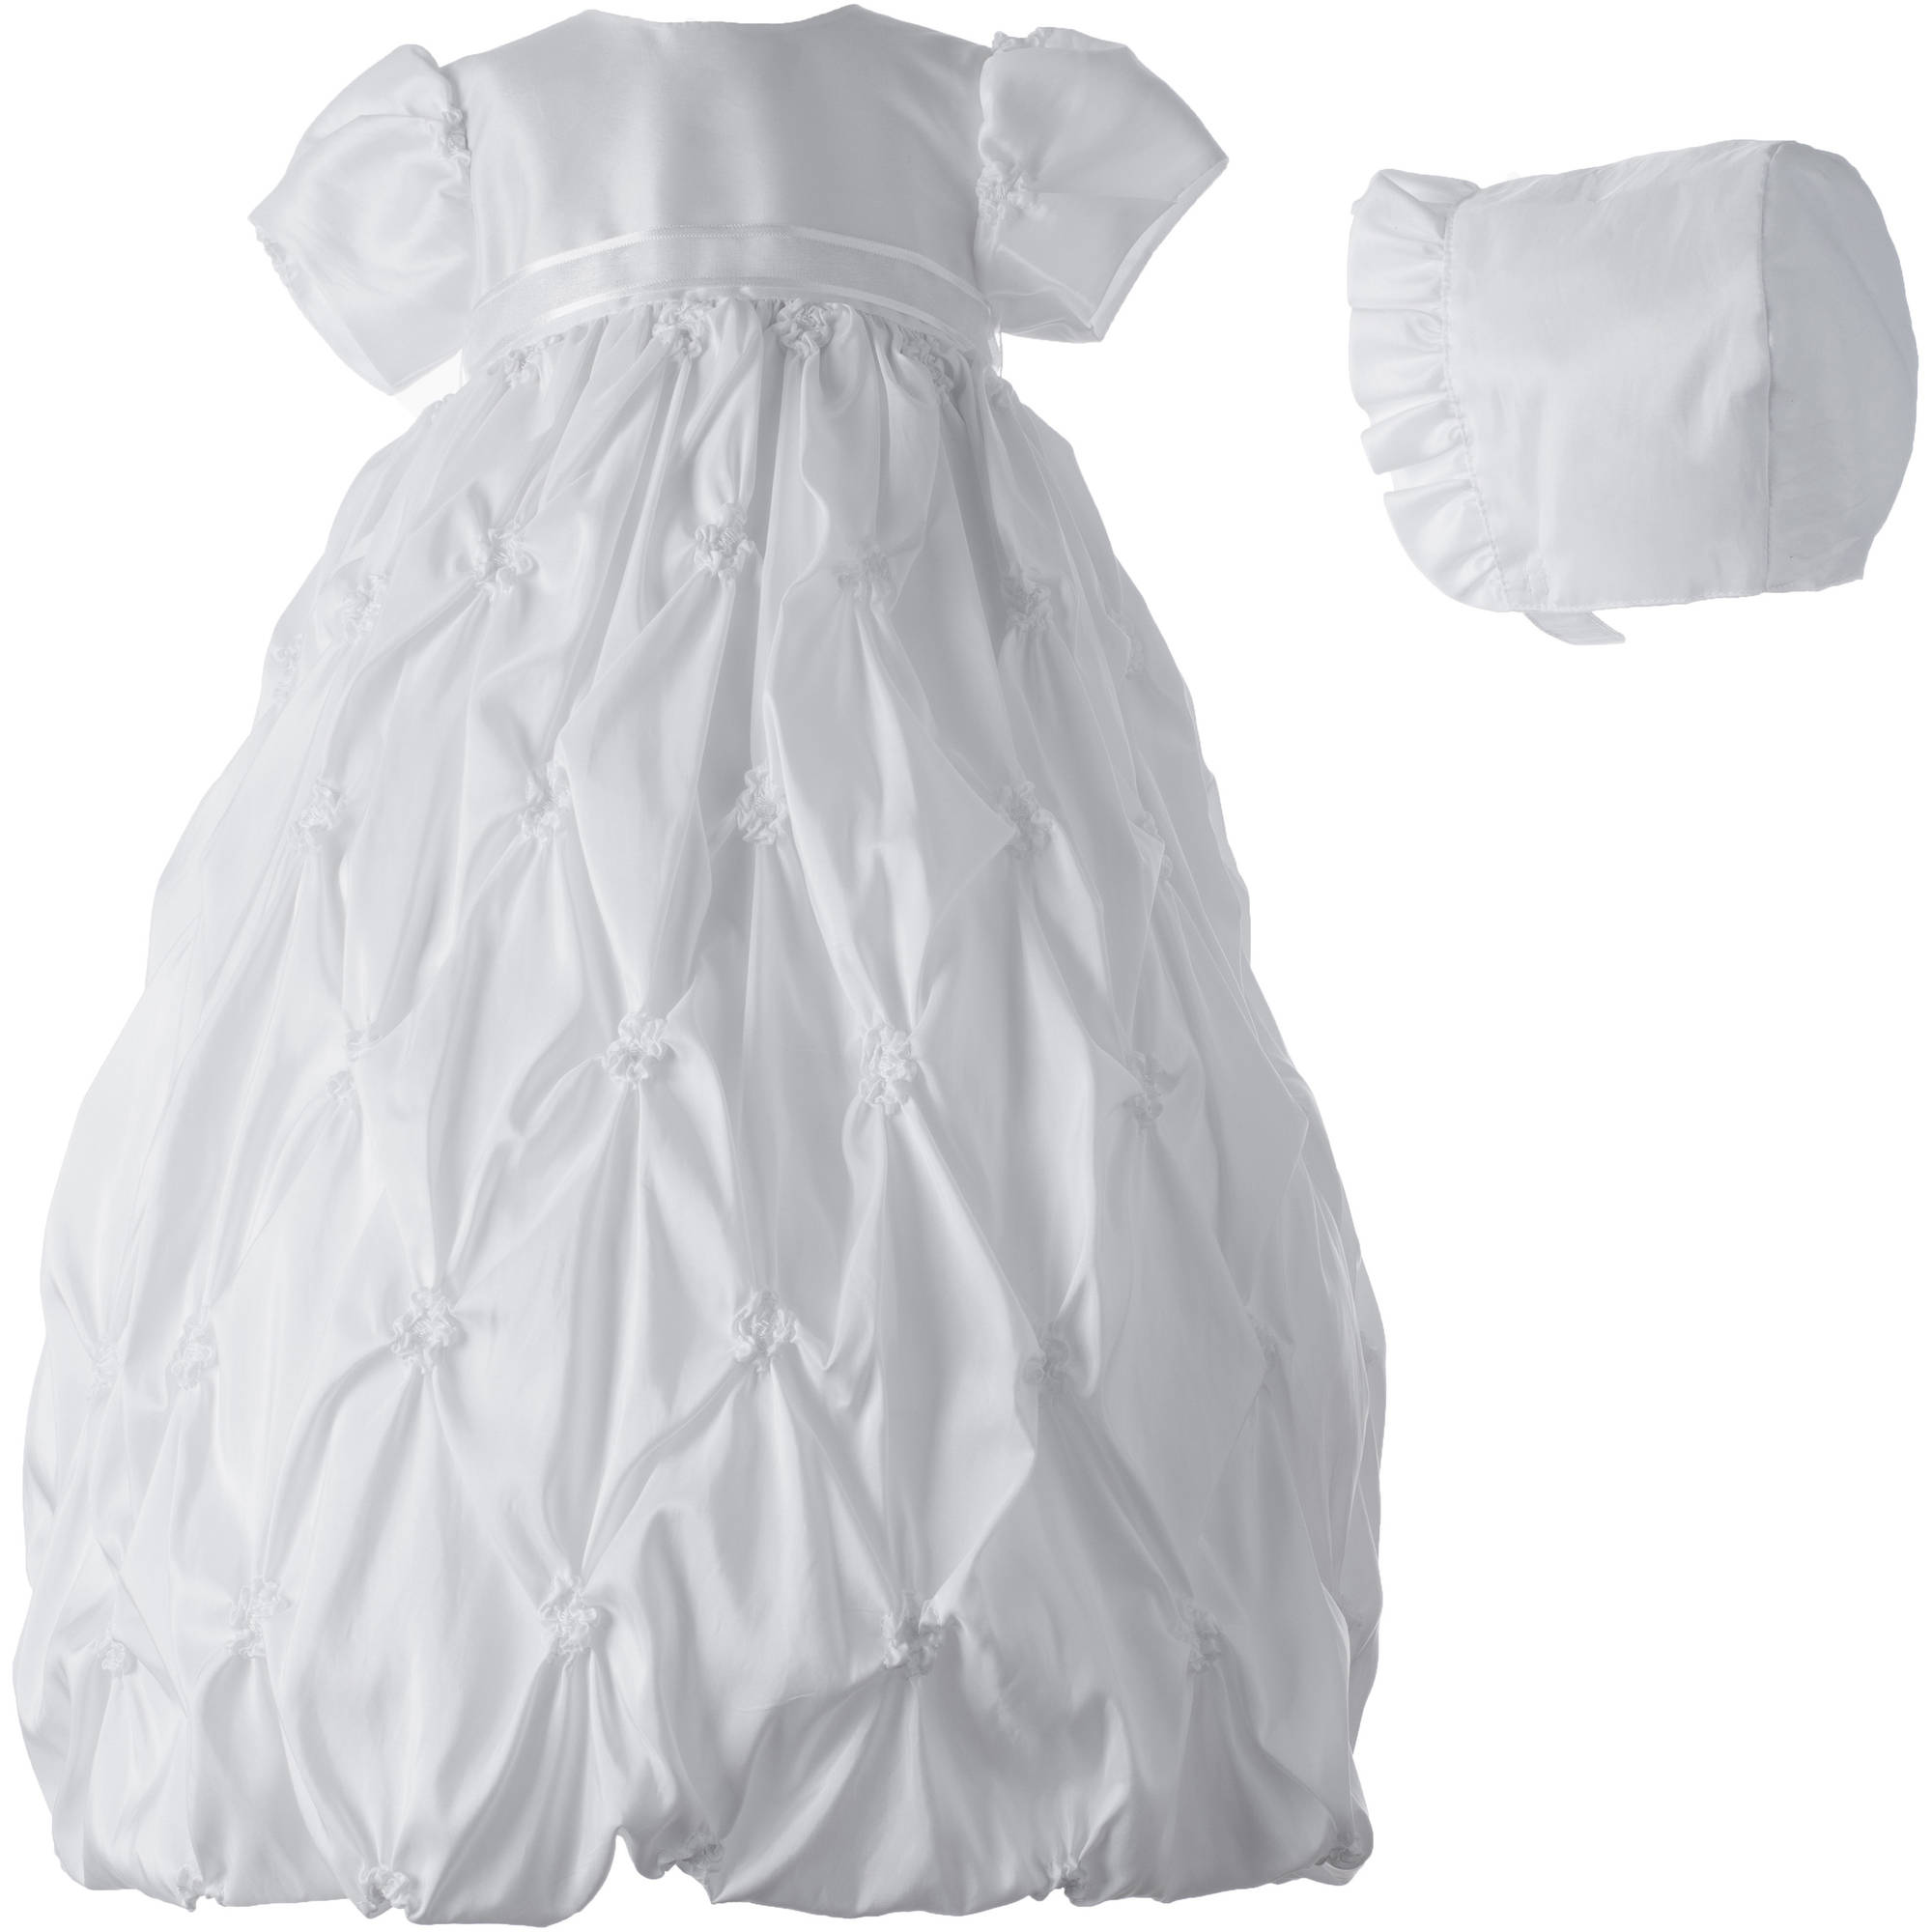 Christening Baptism Newborn Baby Girl Special Occasion Taffeta Long Dress With Allover Puckered Embroidery